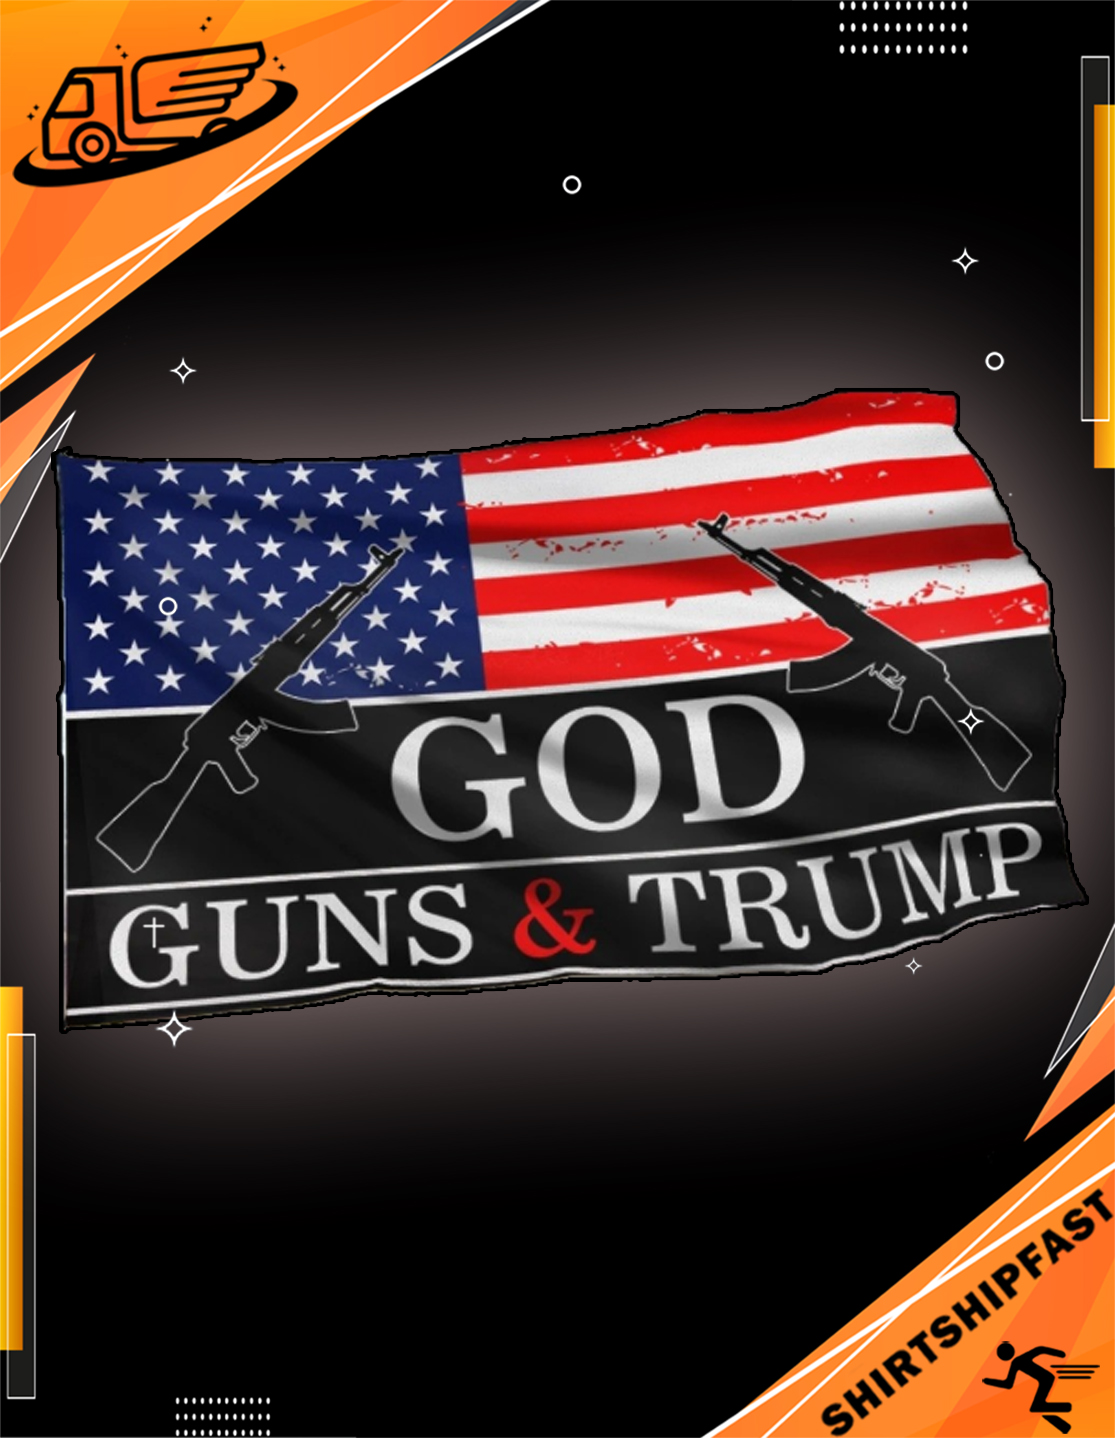 God guns and Trump flag - House and Garden Flag - Picture 3